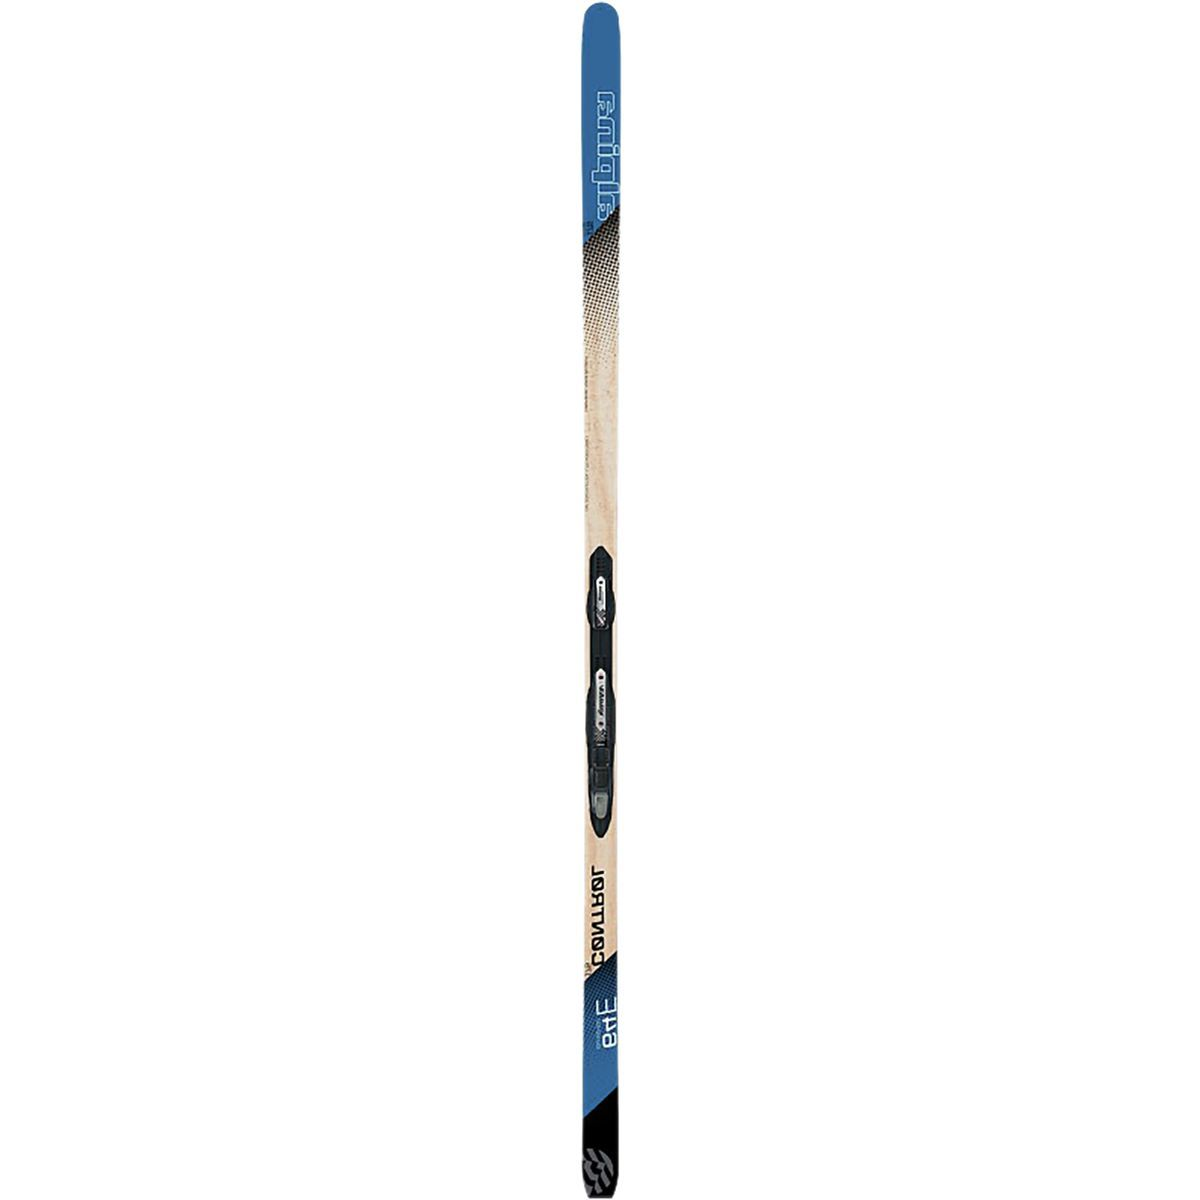 Alpina Control 64 Edge Ski - Men's